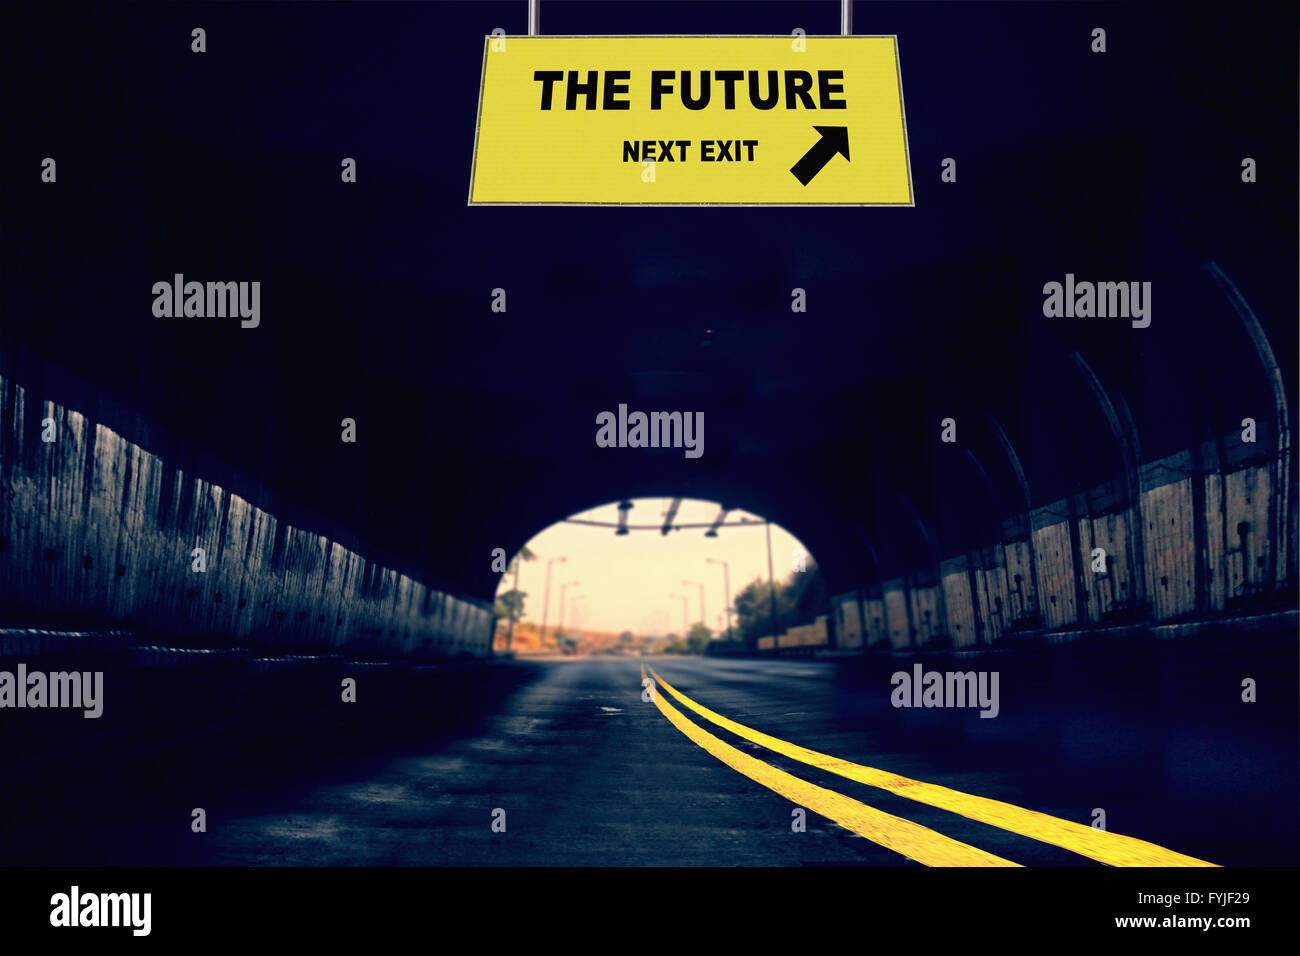 Futur Concept Photo Stock